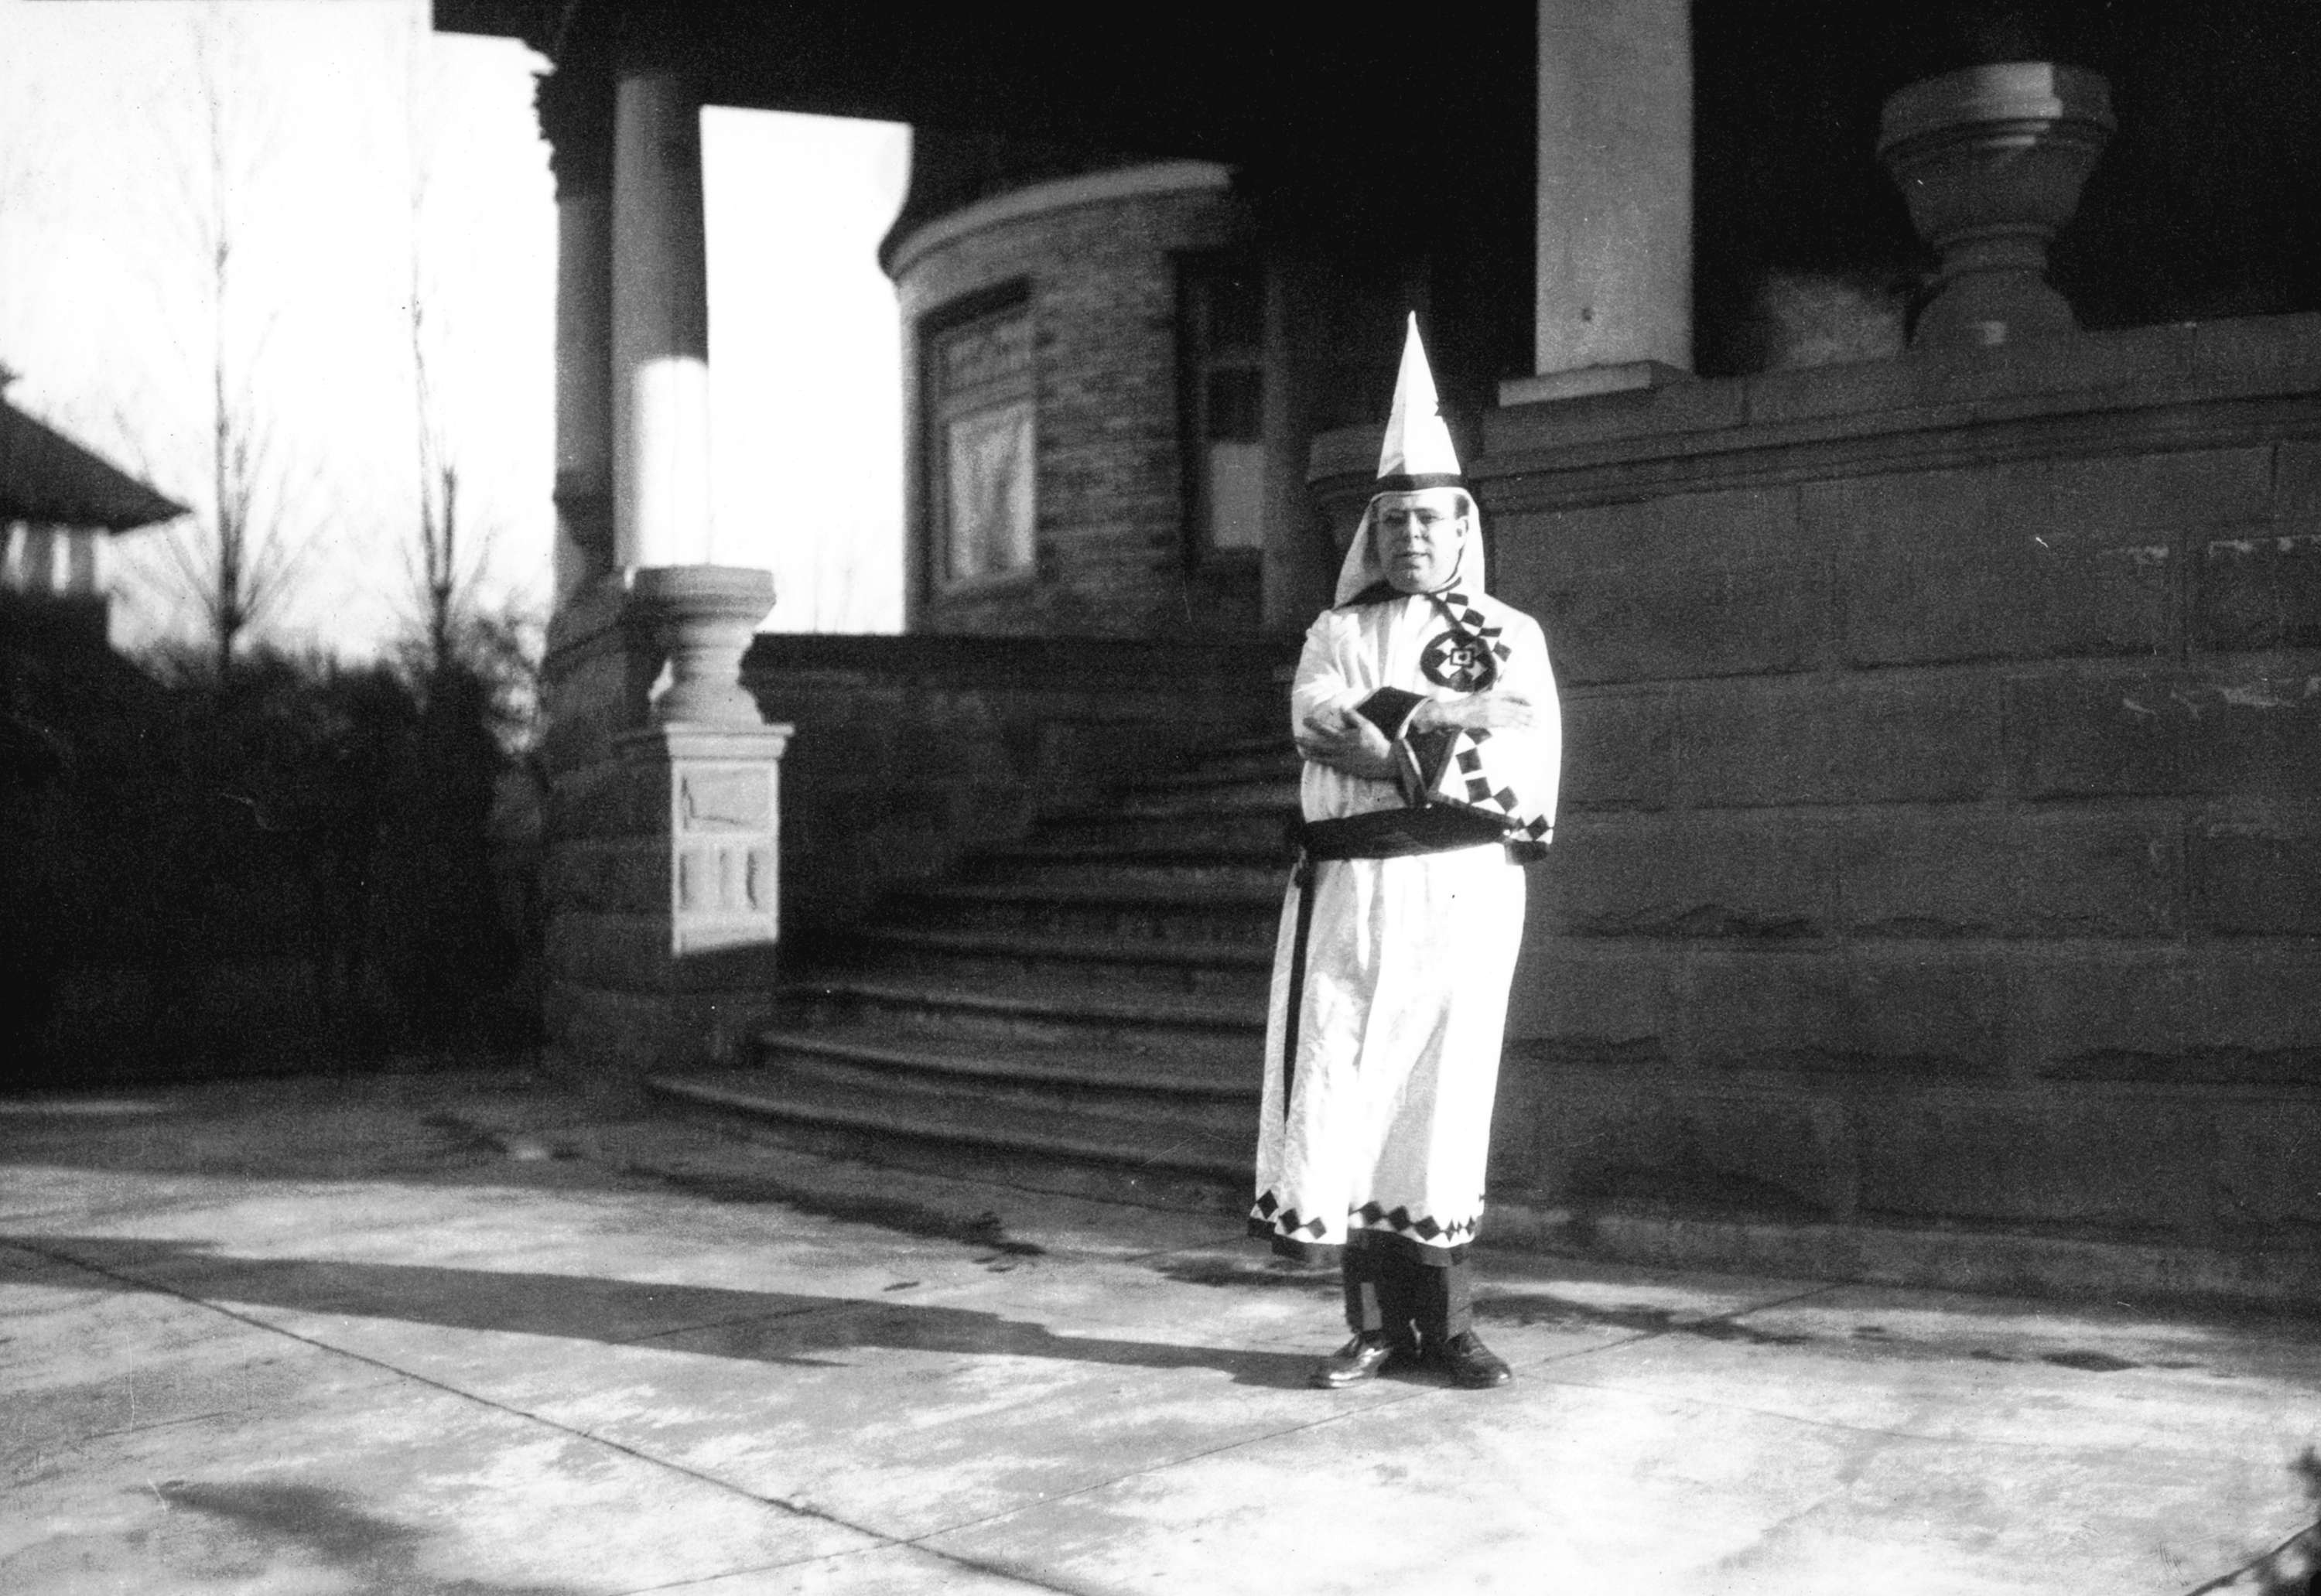 the presence of klu klux klan as described in john grishams the chamber Working alongside john lewis, andrew young, the  saw the ku klux klan as an all-too visible power in  prepare for the continued presence of the klan.